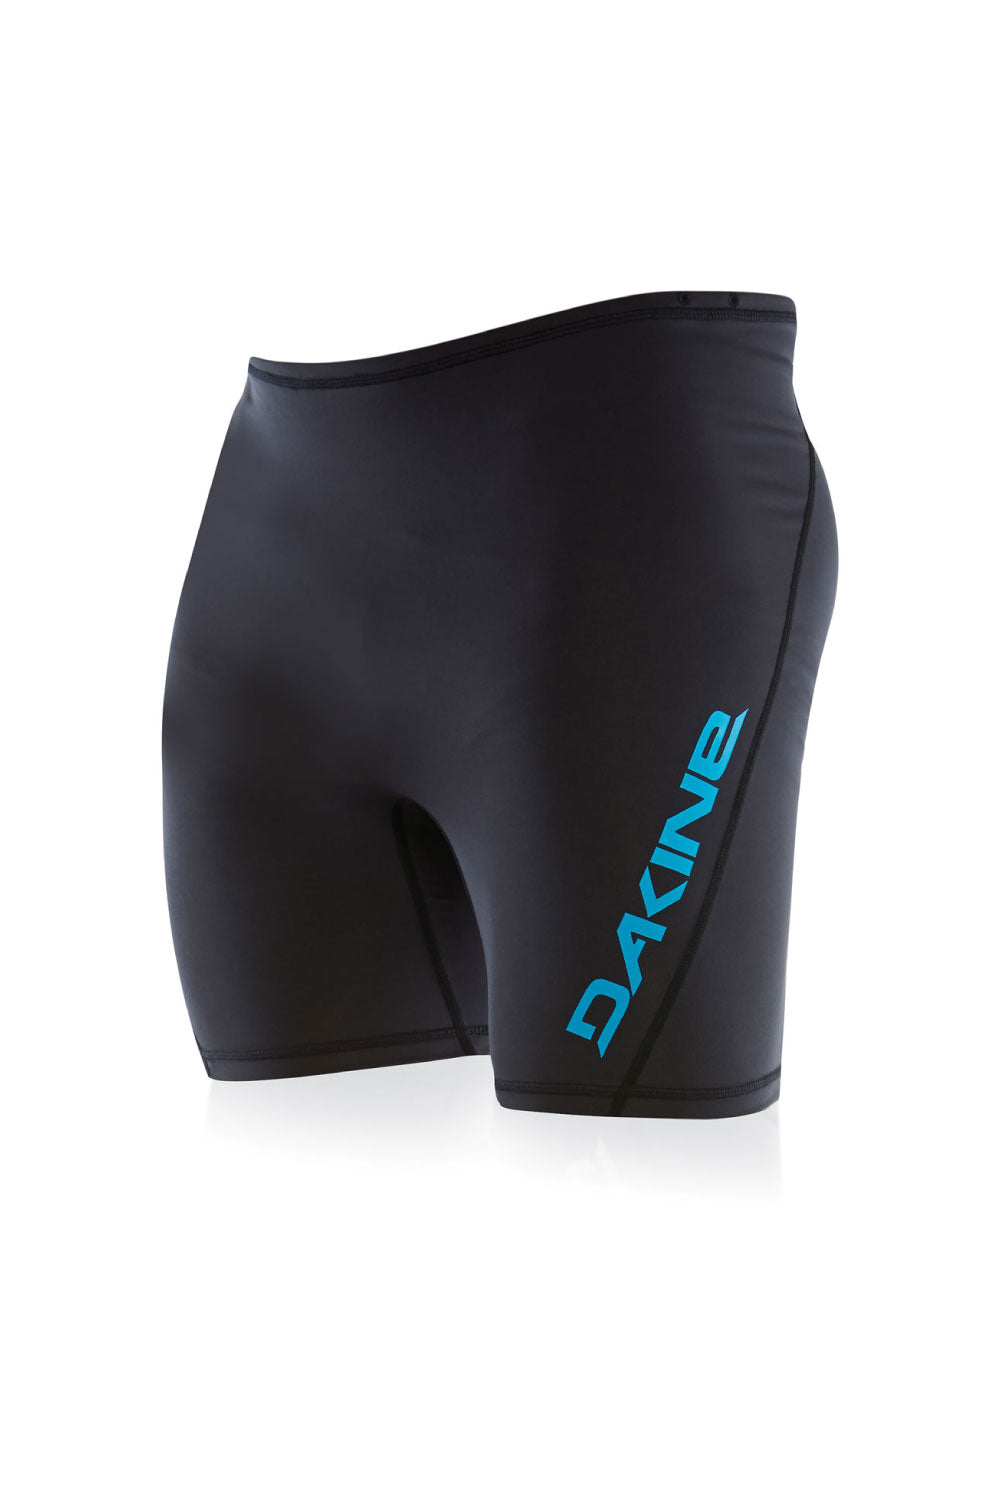 Mens Under Surf Short | Undies for Surfing | Dakine Underpants for Surfing